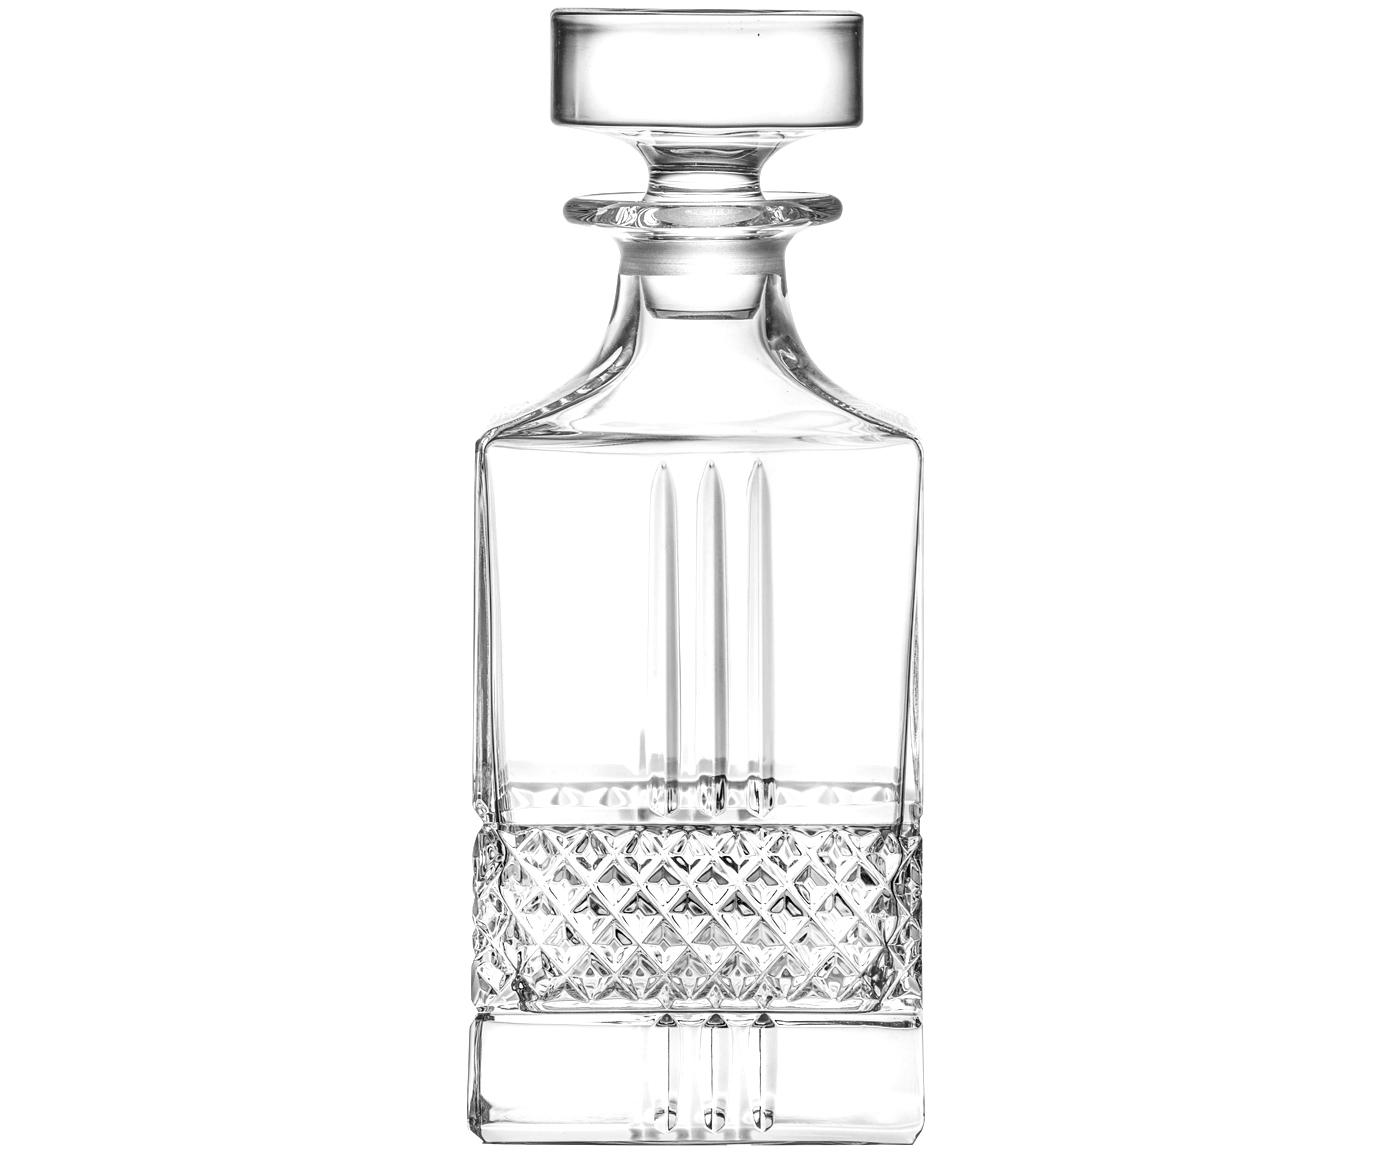 Decanter in cristallo Calicavino, Cristallo, Trasparente, Ø 9 x Alt. 19 cm